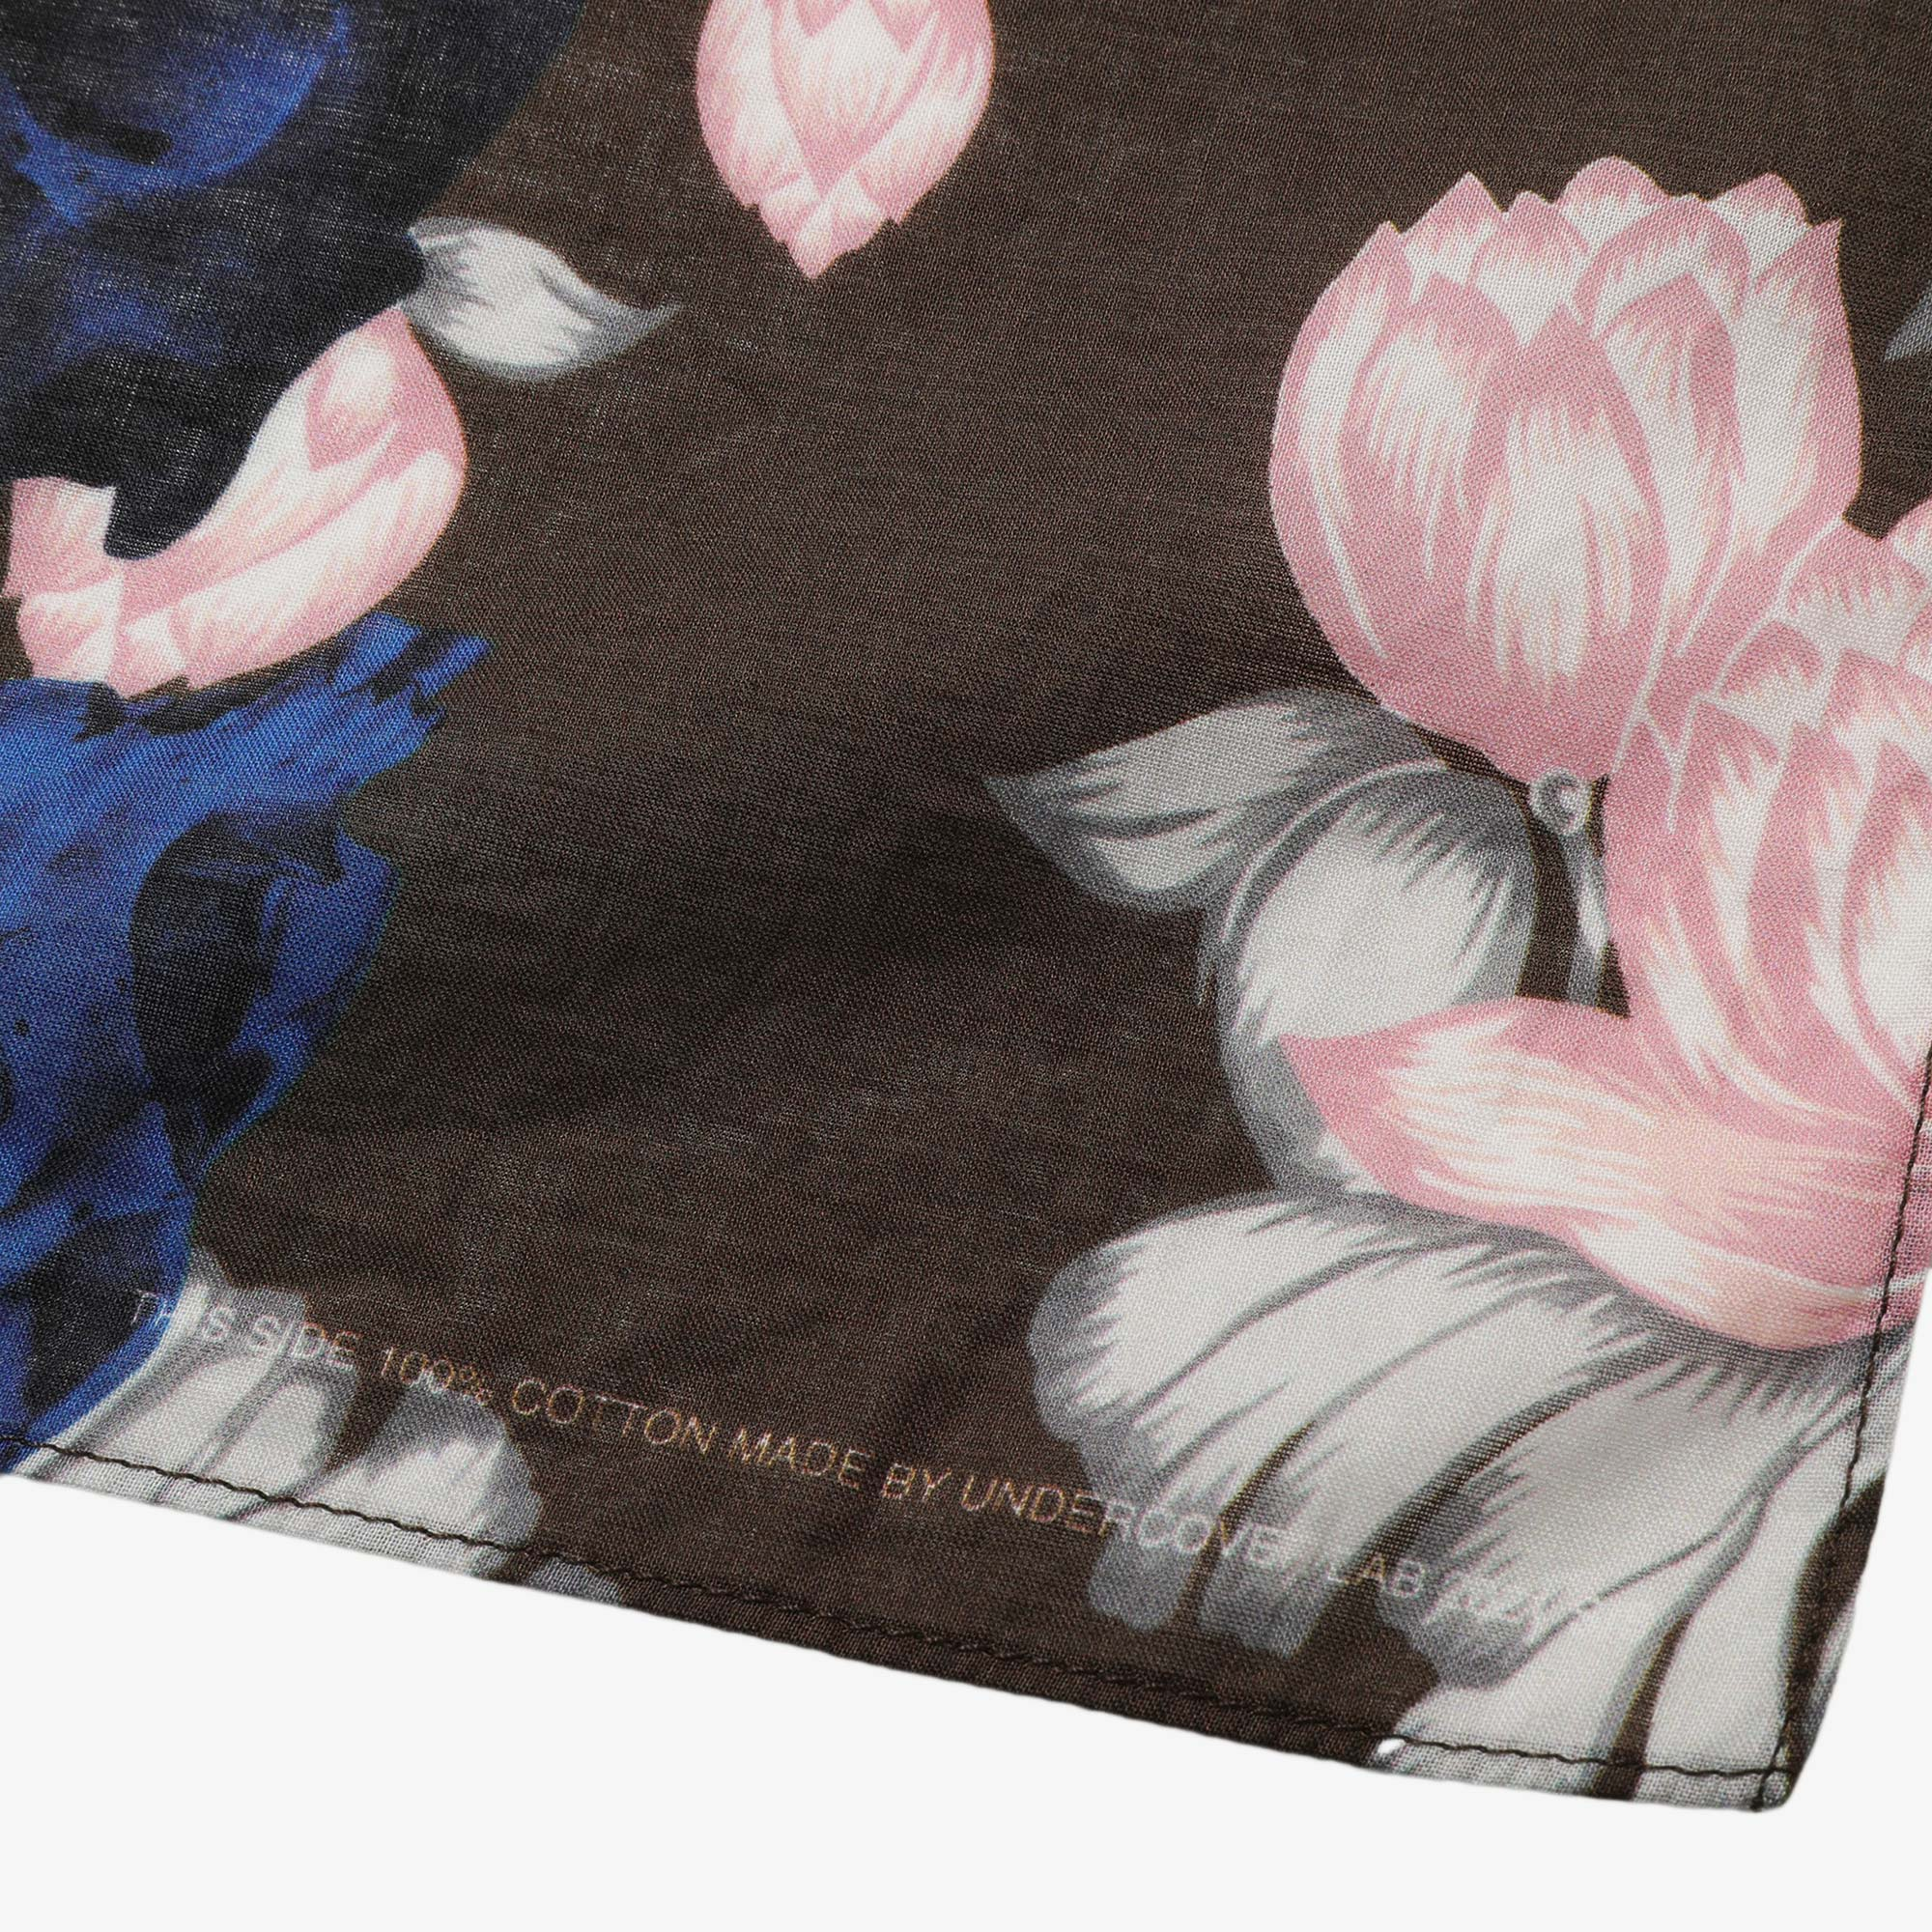 Undercover Roses Skull Pocket Square UC1A4M01-3 - Brown Base 2